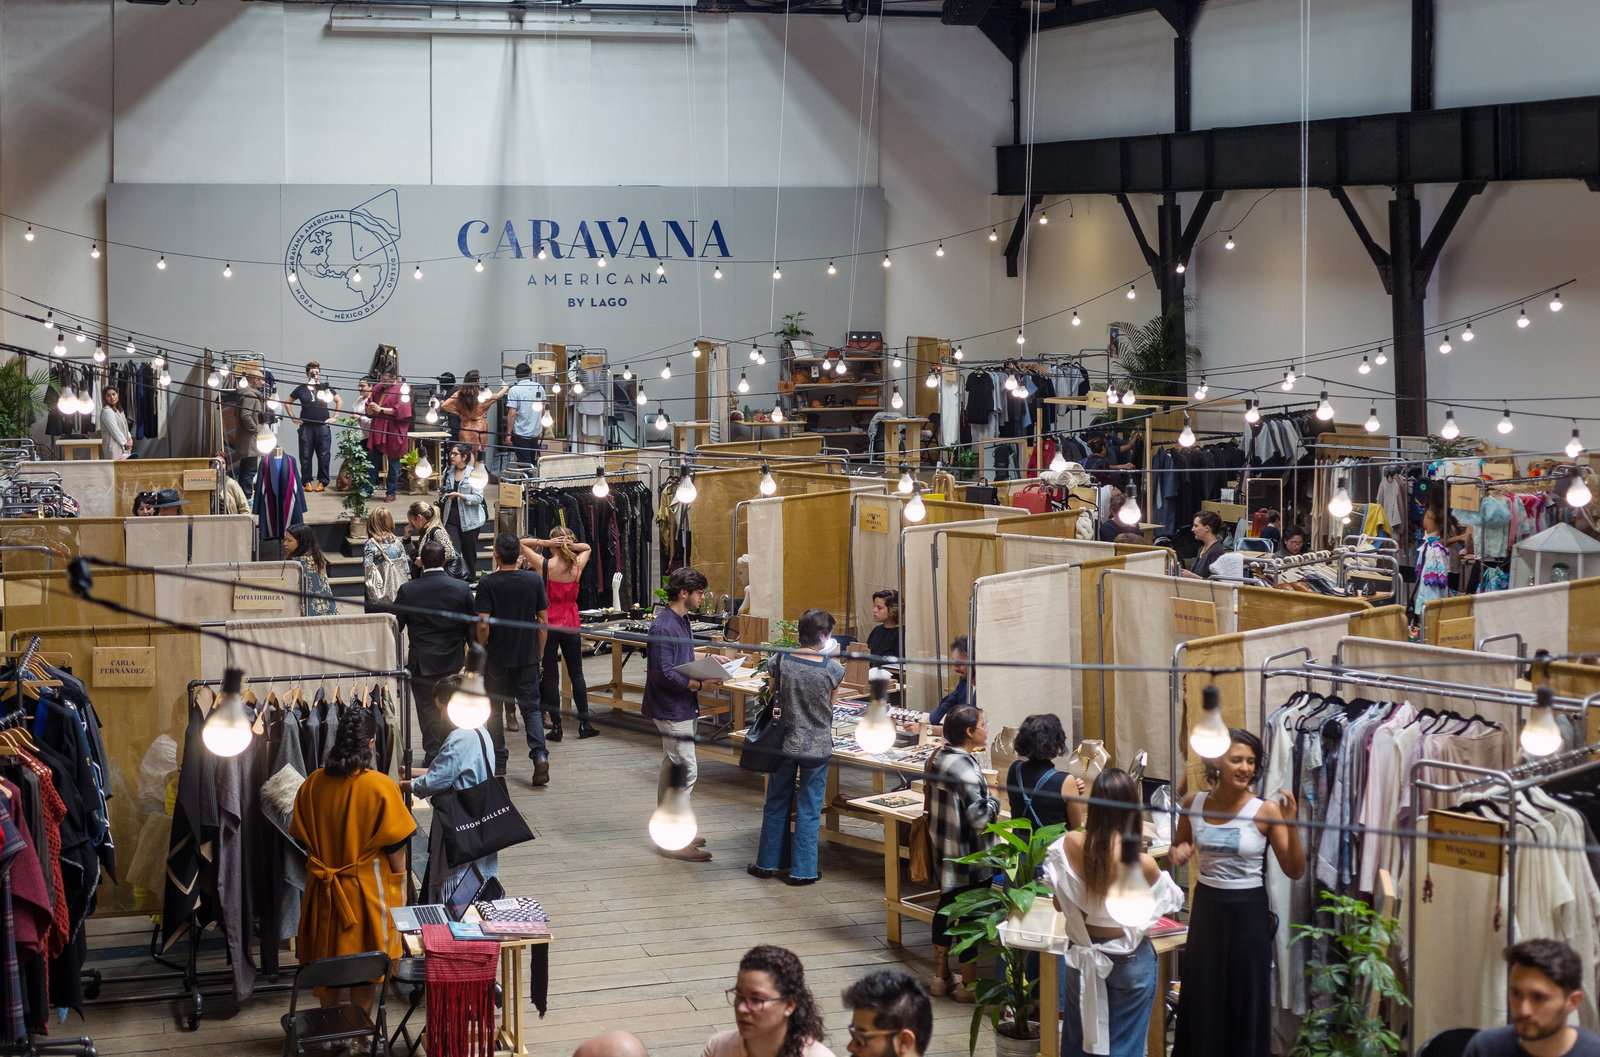 The third edition of Caravana Americana was held from March 24 to 26 on Dr. Claudio Bernard 111 in Mexico City. The industrial space was formerly home to a working tram terminal and still holds original turbines that were in working condition until the '50s. The floor below holds a printing press and hosts talks, exhibits, and other events.  Photo 2 of 16 in Caravana Americana Showcases the Passion of Latin America's Design Community